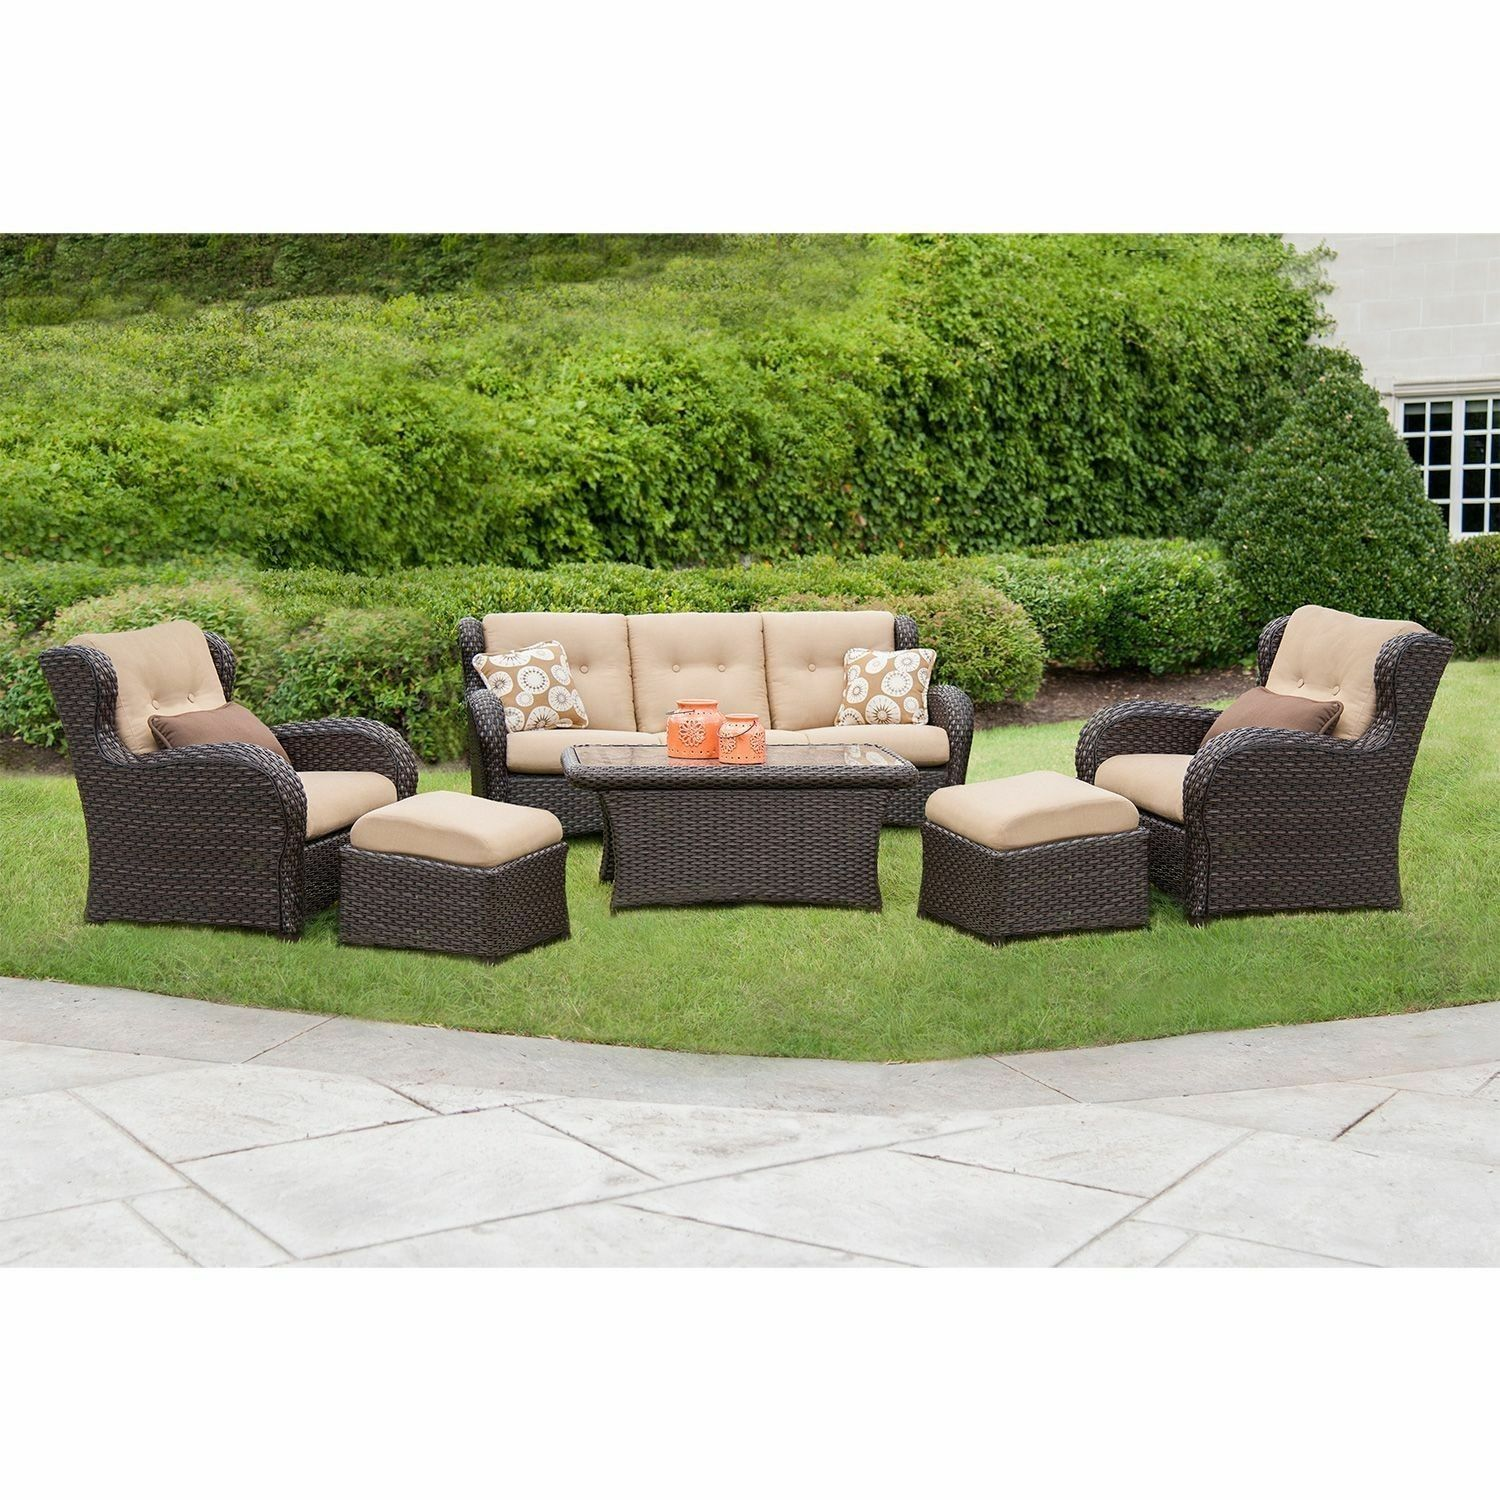 Top 7 Furniture Patio Sets